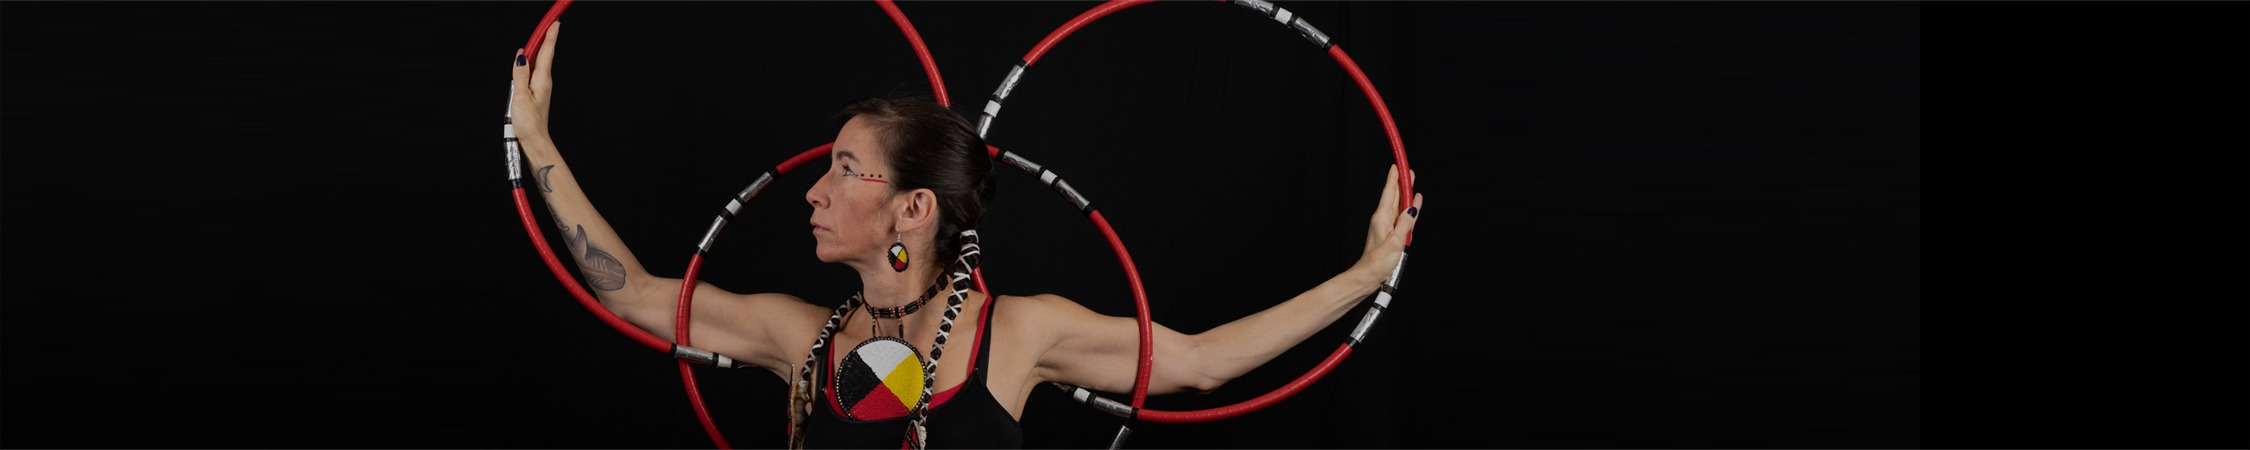 Barbara faces profile and spreads her arms out wide between three hoops, forming overlapping shapes. The hoops are red with white, silver and black details. She wears layered black and red tank tops with a large necklace with the four realms image (black, red, white and yellow quarters).